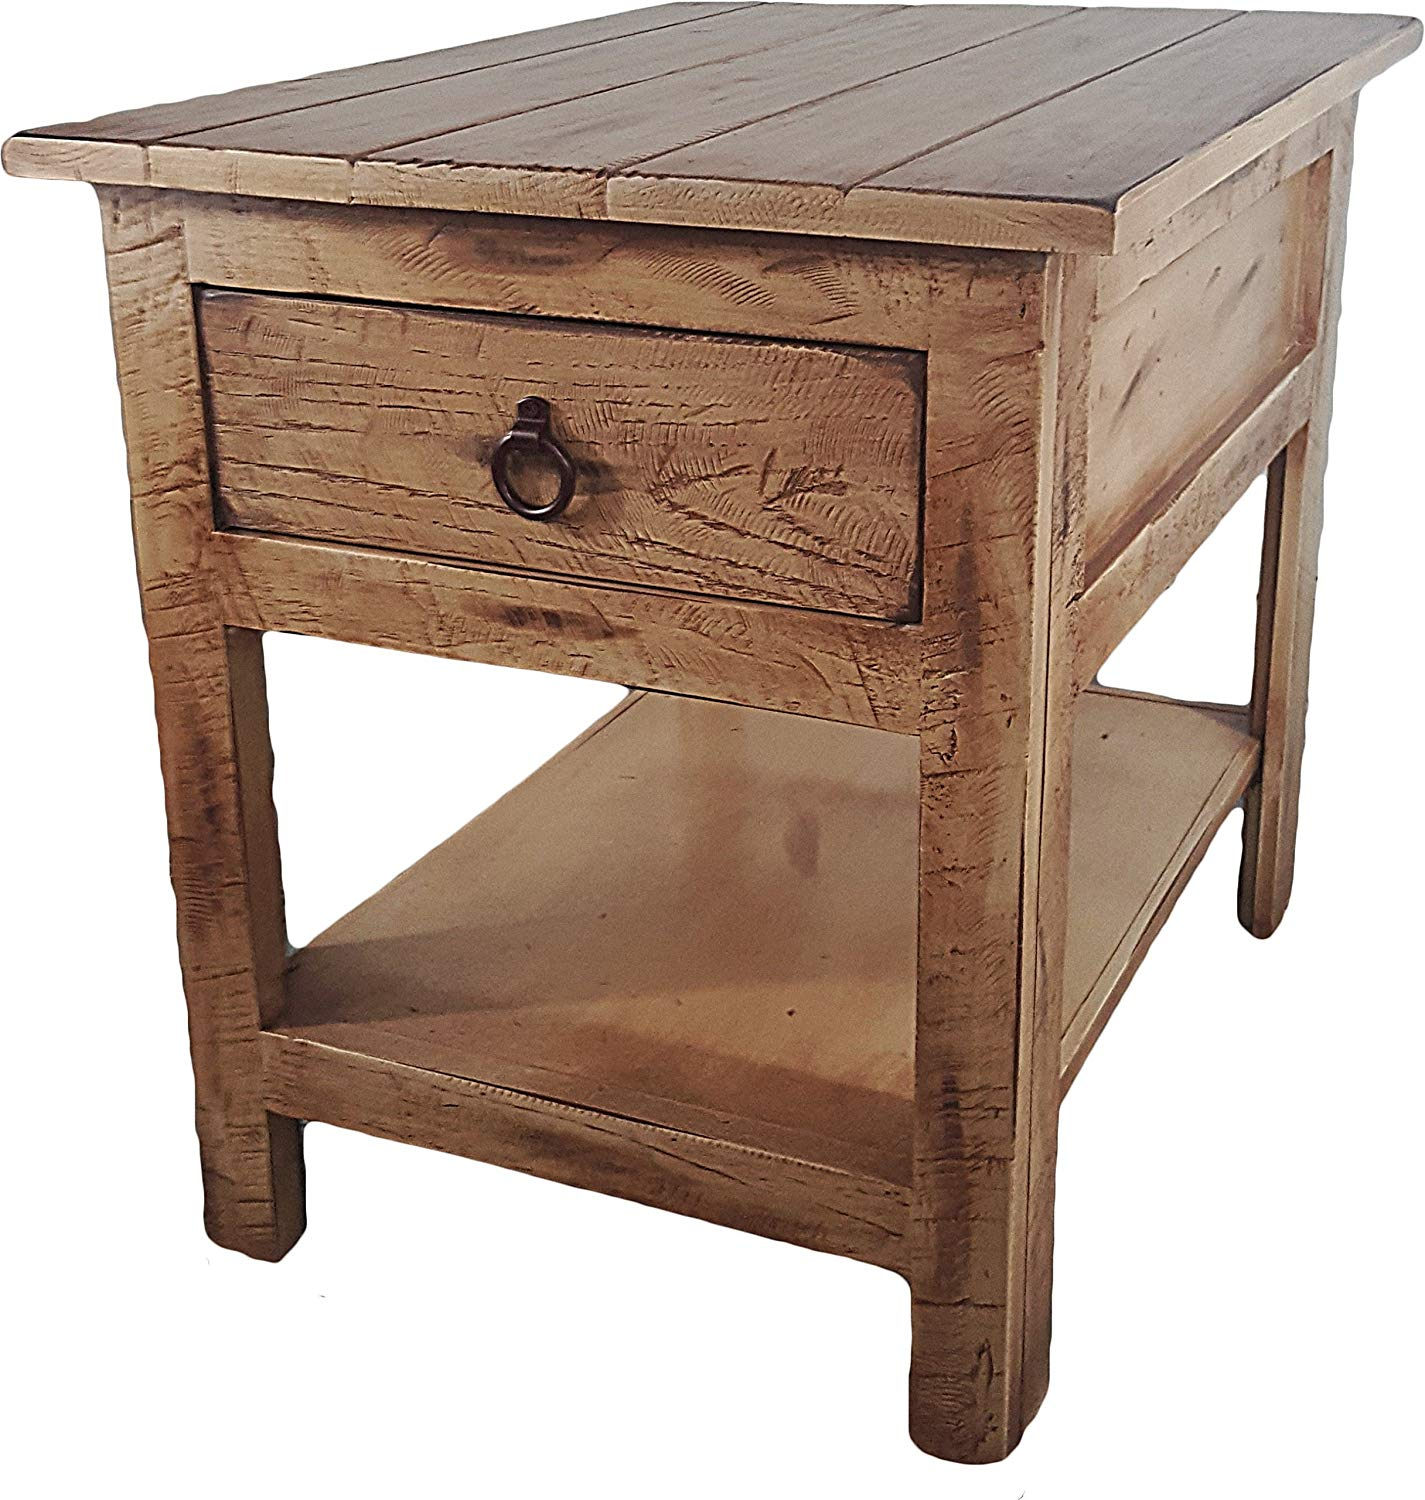 american heartland rustic end table tables soft white kitchen dining round glass coffee wood base side floor lamps old pallet furniture etched door for bedroom whalen fully